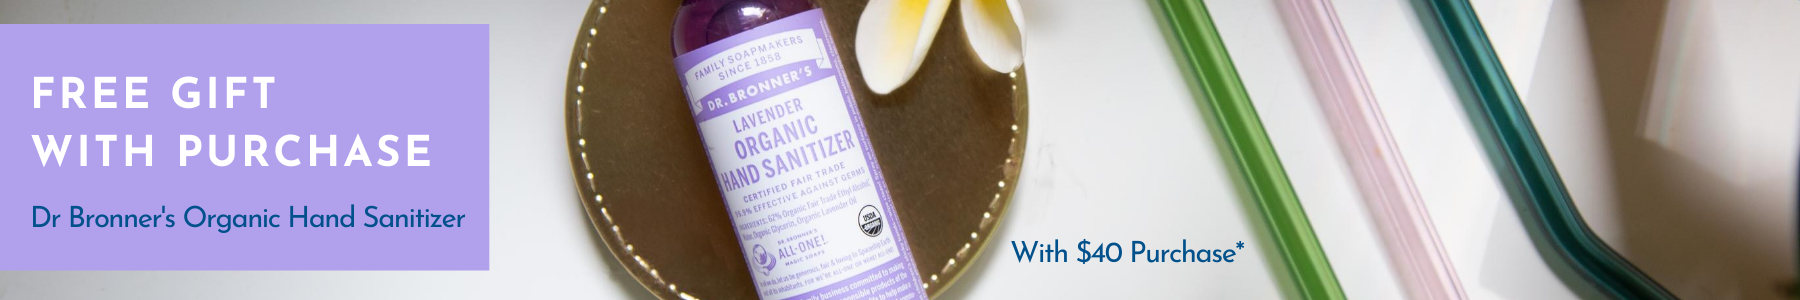 Free Dr Bronner's Hand Sanitizer with $40 Purchase